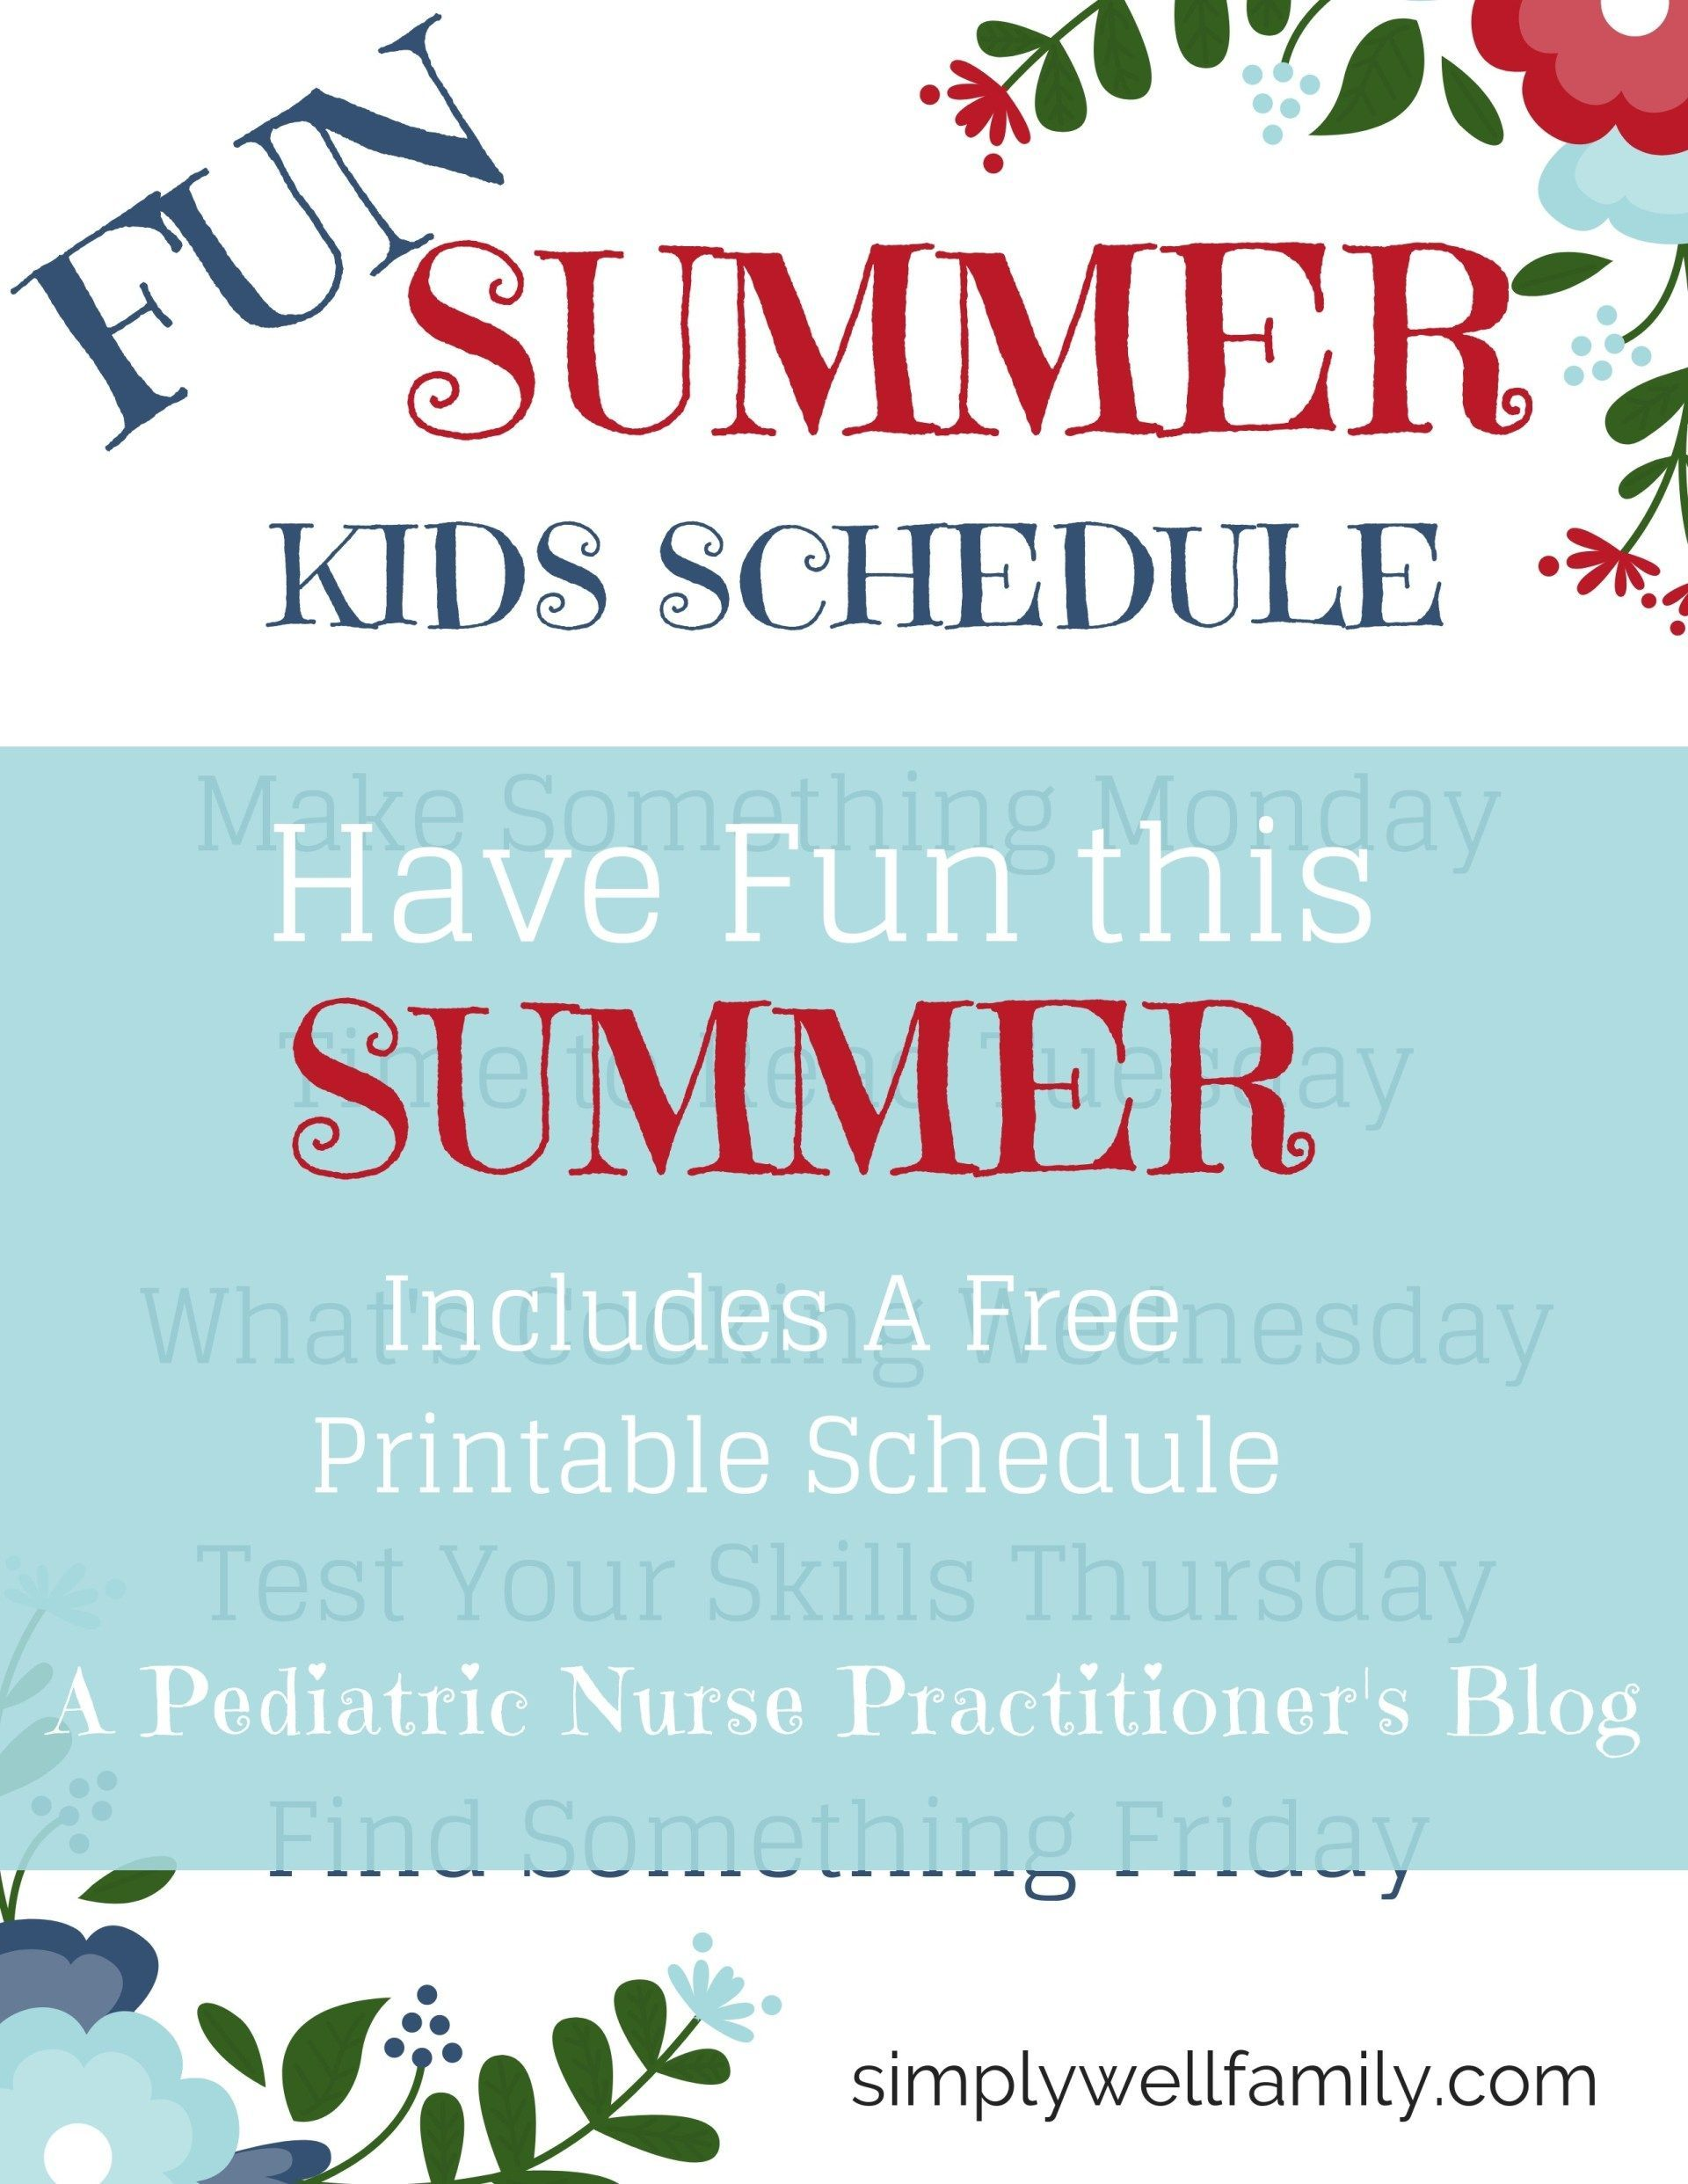 Summer Schedule for Kids - Simply Well Family #summerschedule Summer Schedule for Kids - Simply Well Family #summerschedule